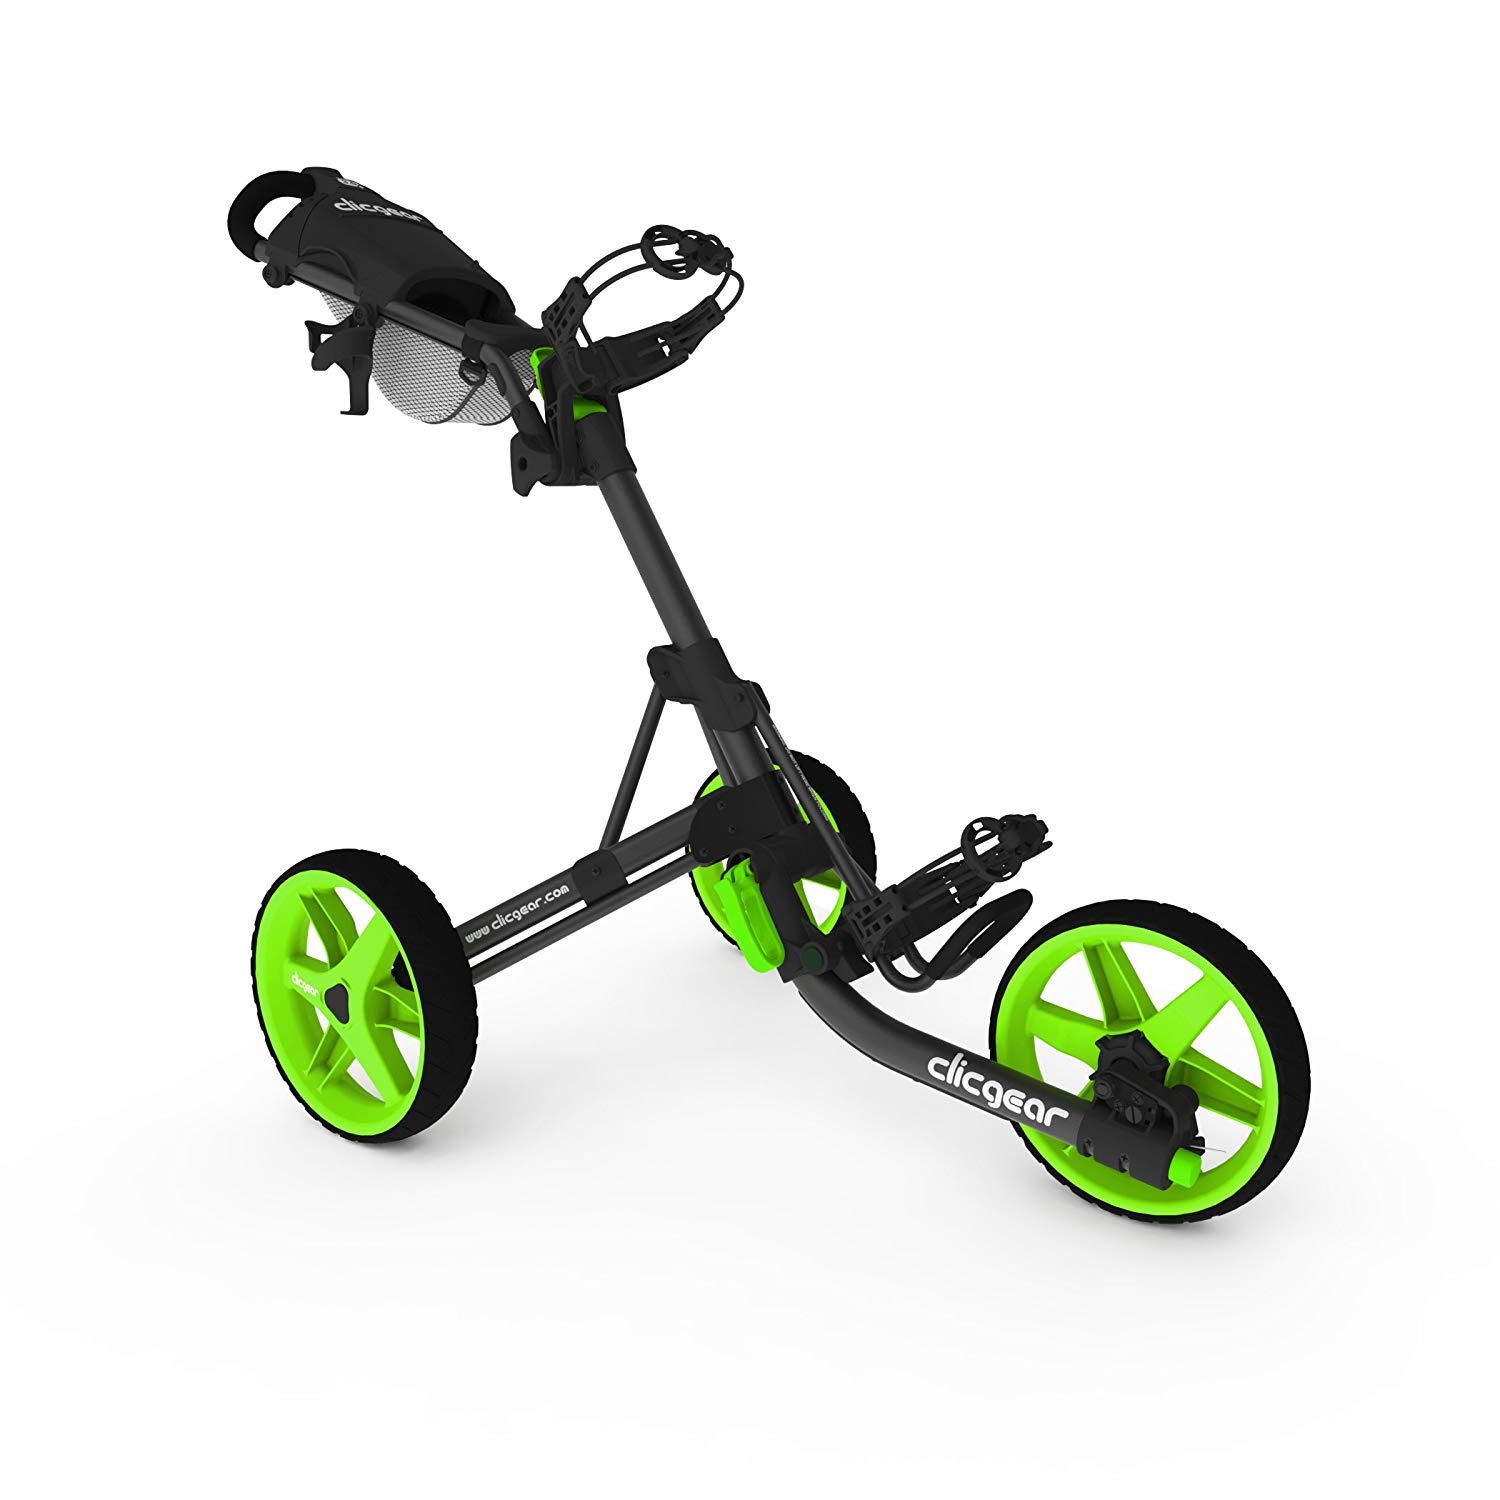 Clicgear Model 3.5+ Golf Cart, Charcoal:Lime